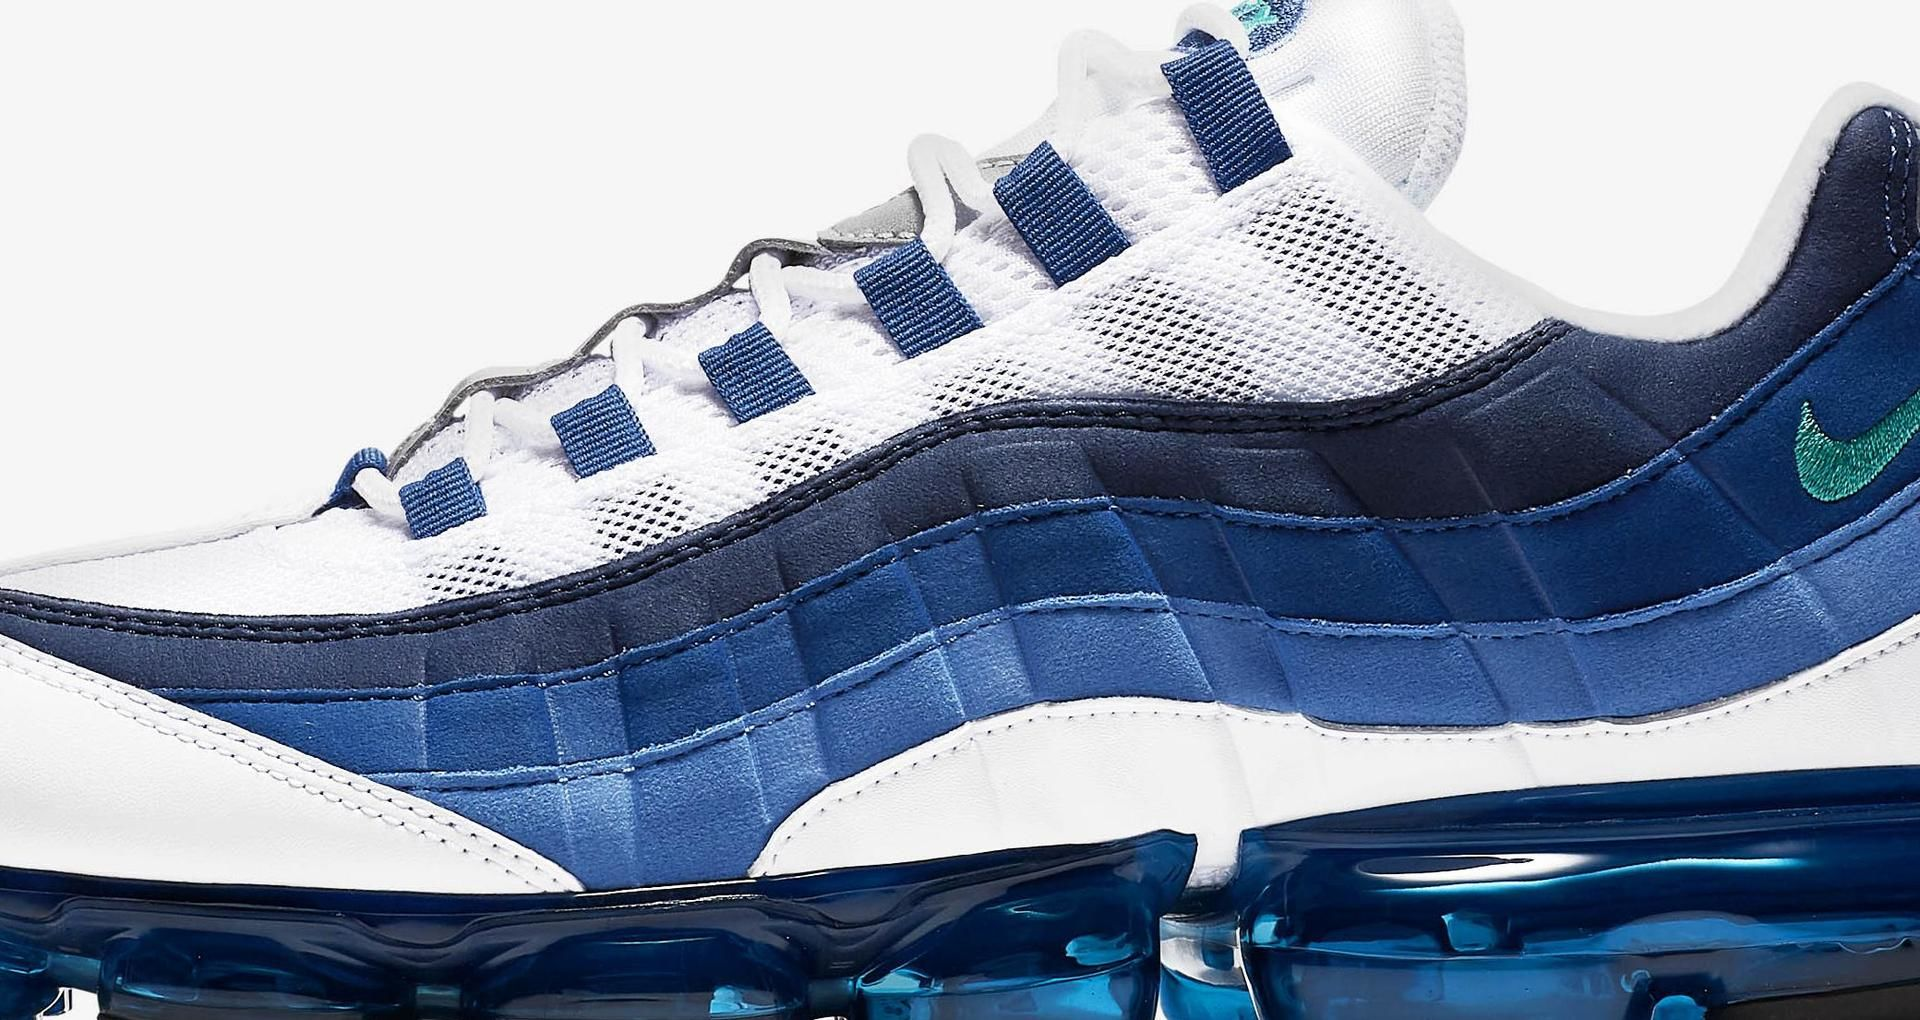 04f28c44059bb This edition features the iconic OG French Blue colorway from the Air Max 95